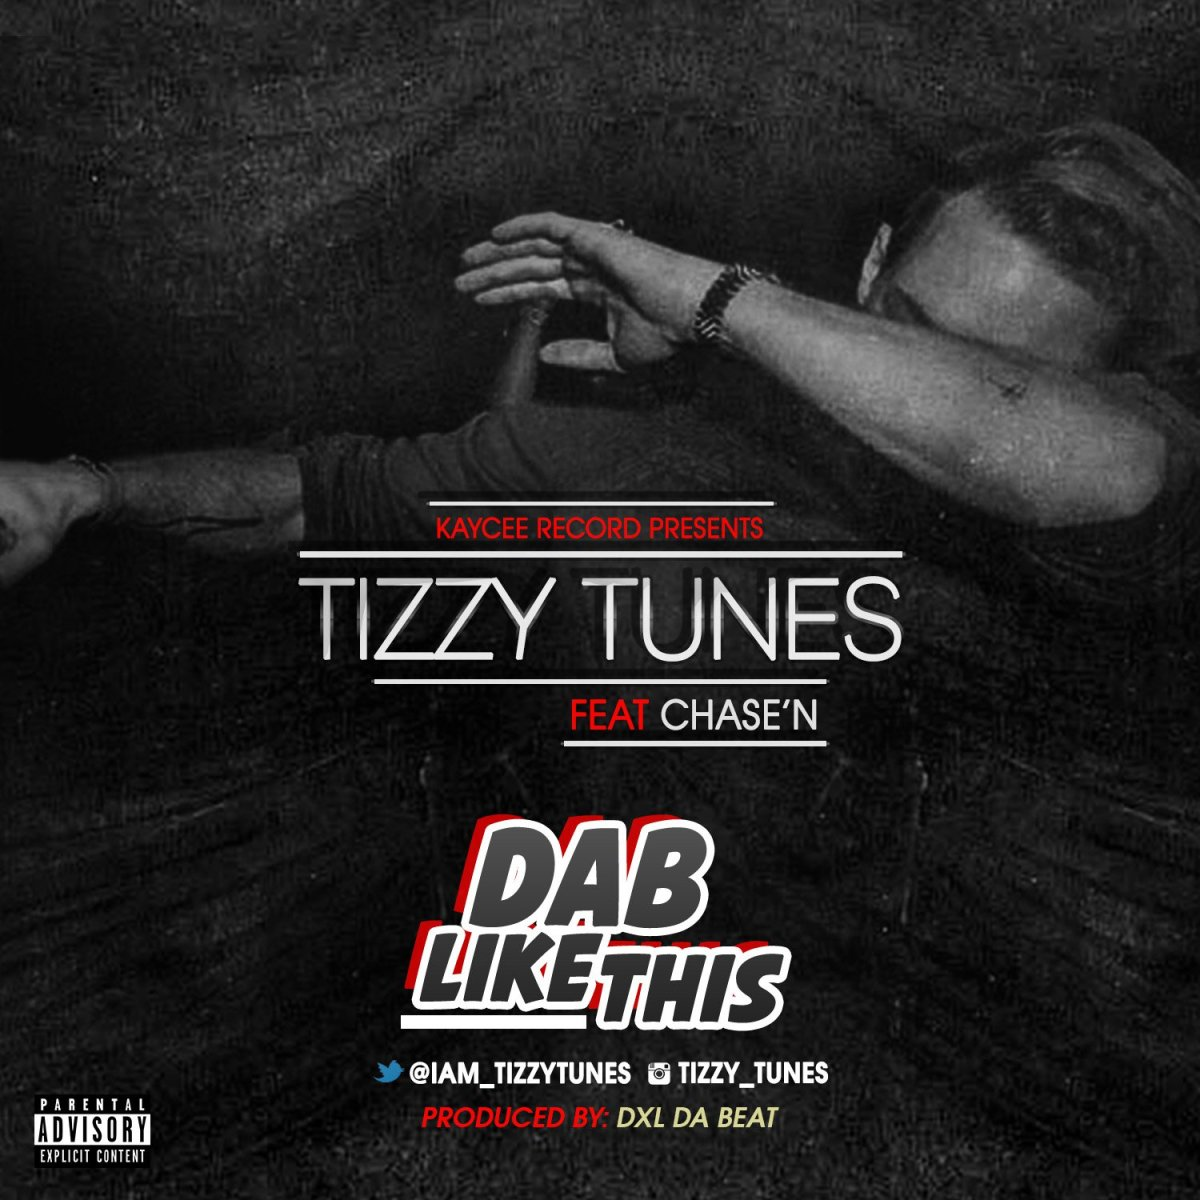 Download MP3: Tizzy Tunes - Dab Like Dis ft. @170chasen |[@iam_tizzytunes]